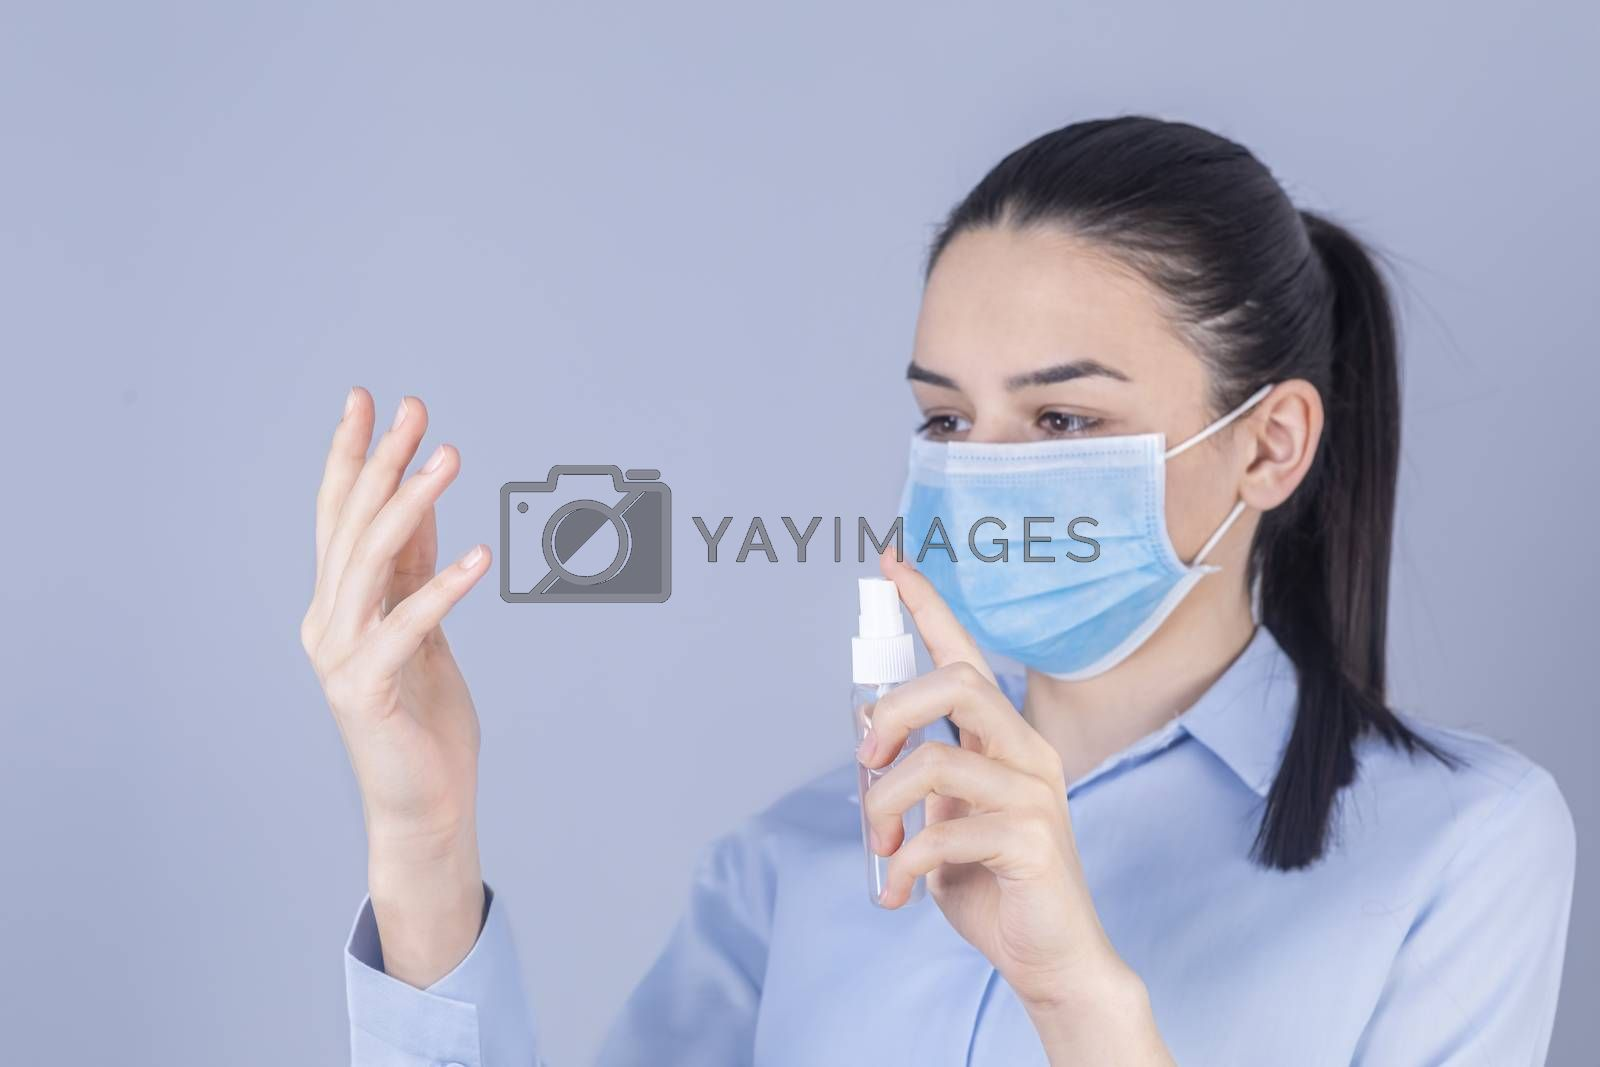 COVID-19 Pandemic Coronavirus. Girl with protective mask holdding alcohol spray cleaning protect disease covid 19. Antiseptic, Hygiene and Healthcare concept. Focus on hand.